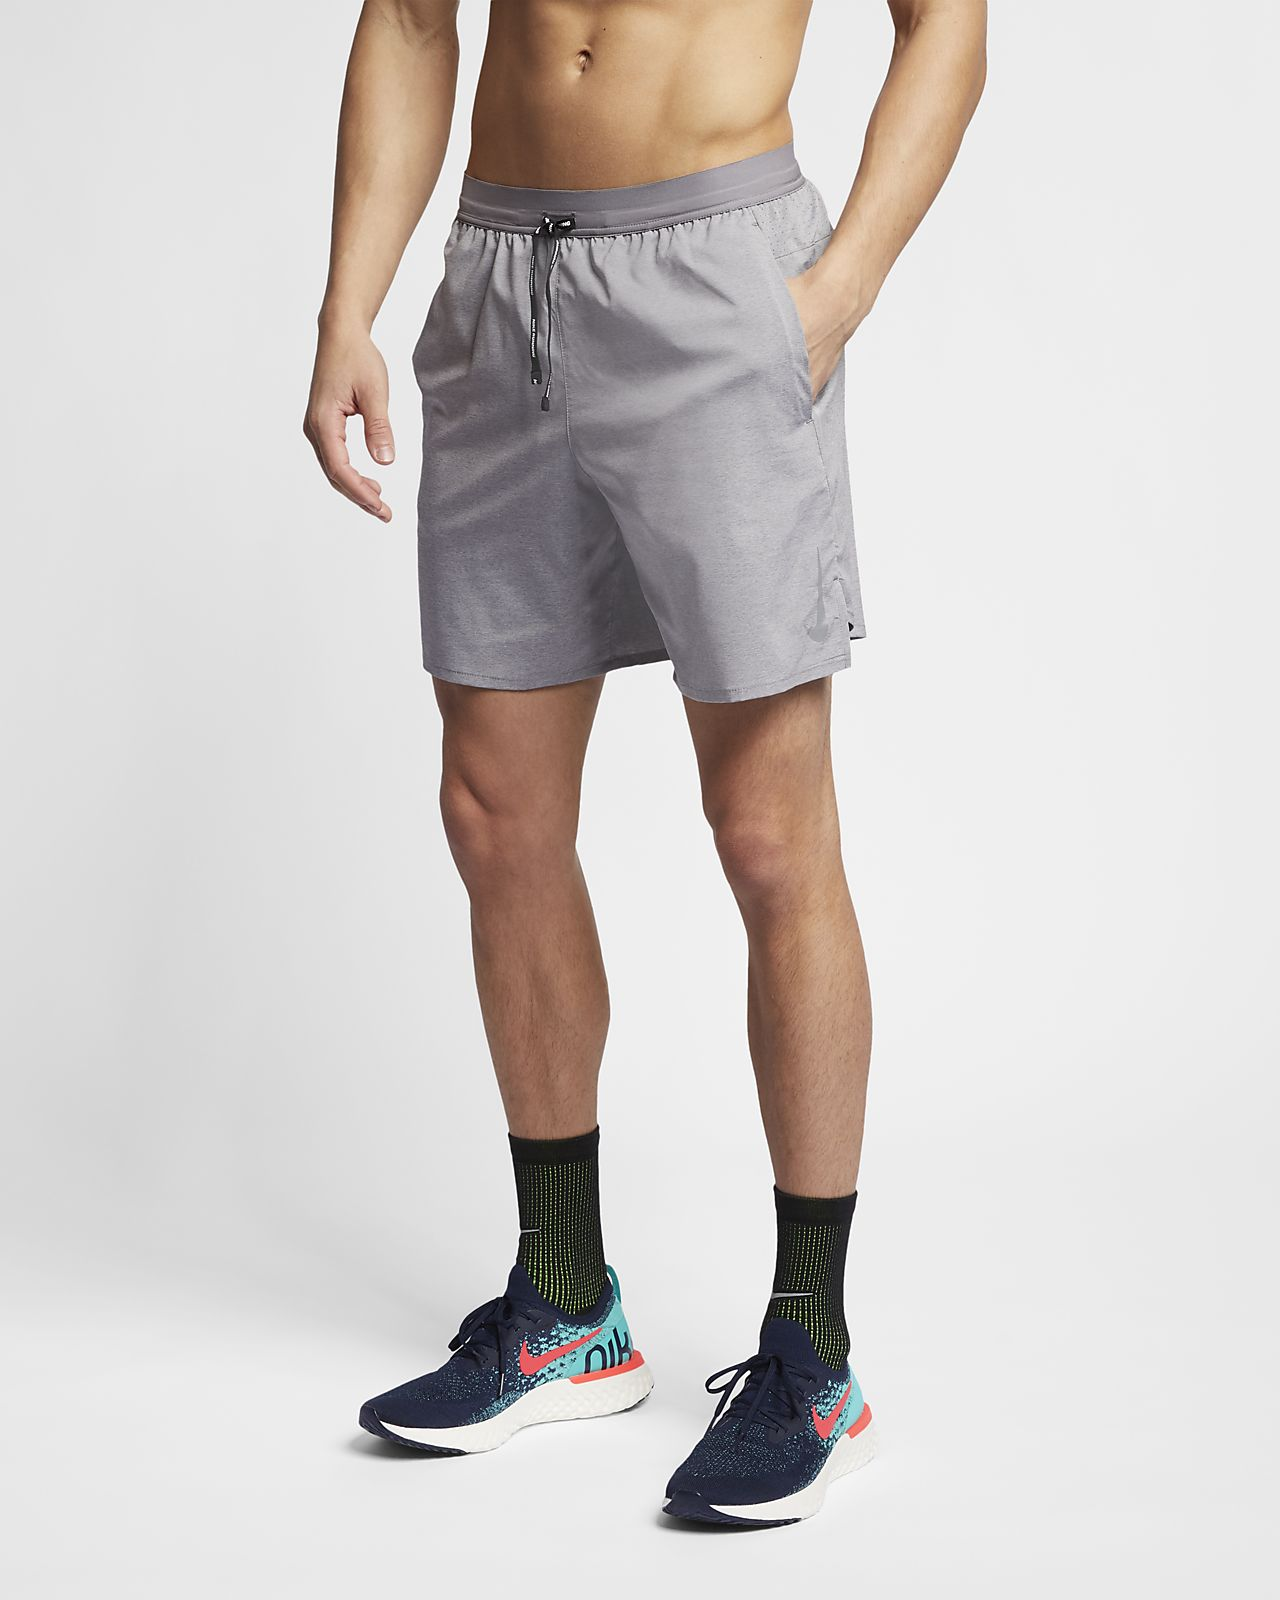 Short de running 2-en-1 Nike Dri-FIT Flex Stride 18 cm pour Homme